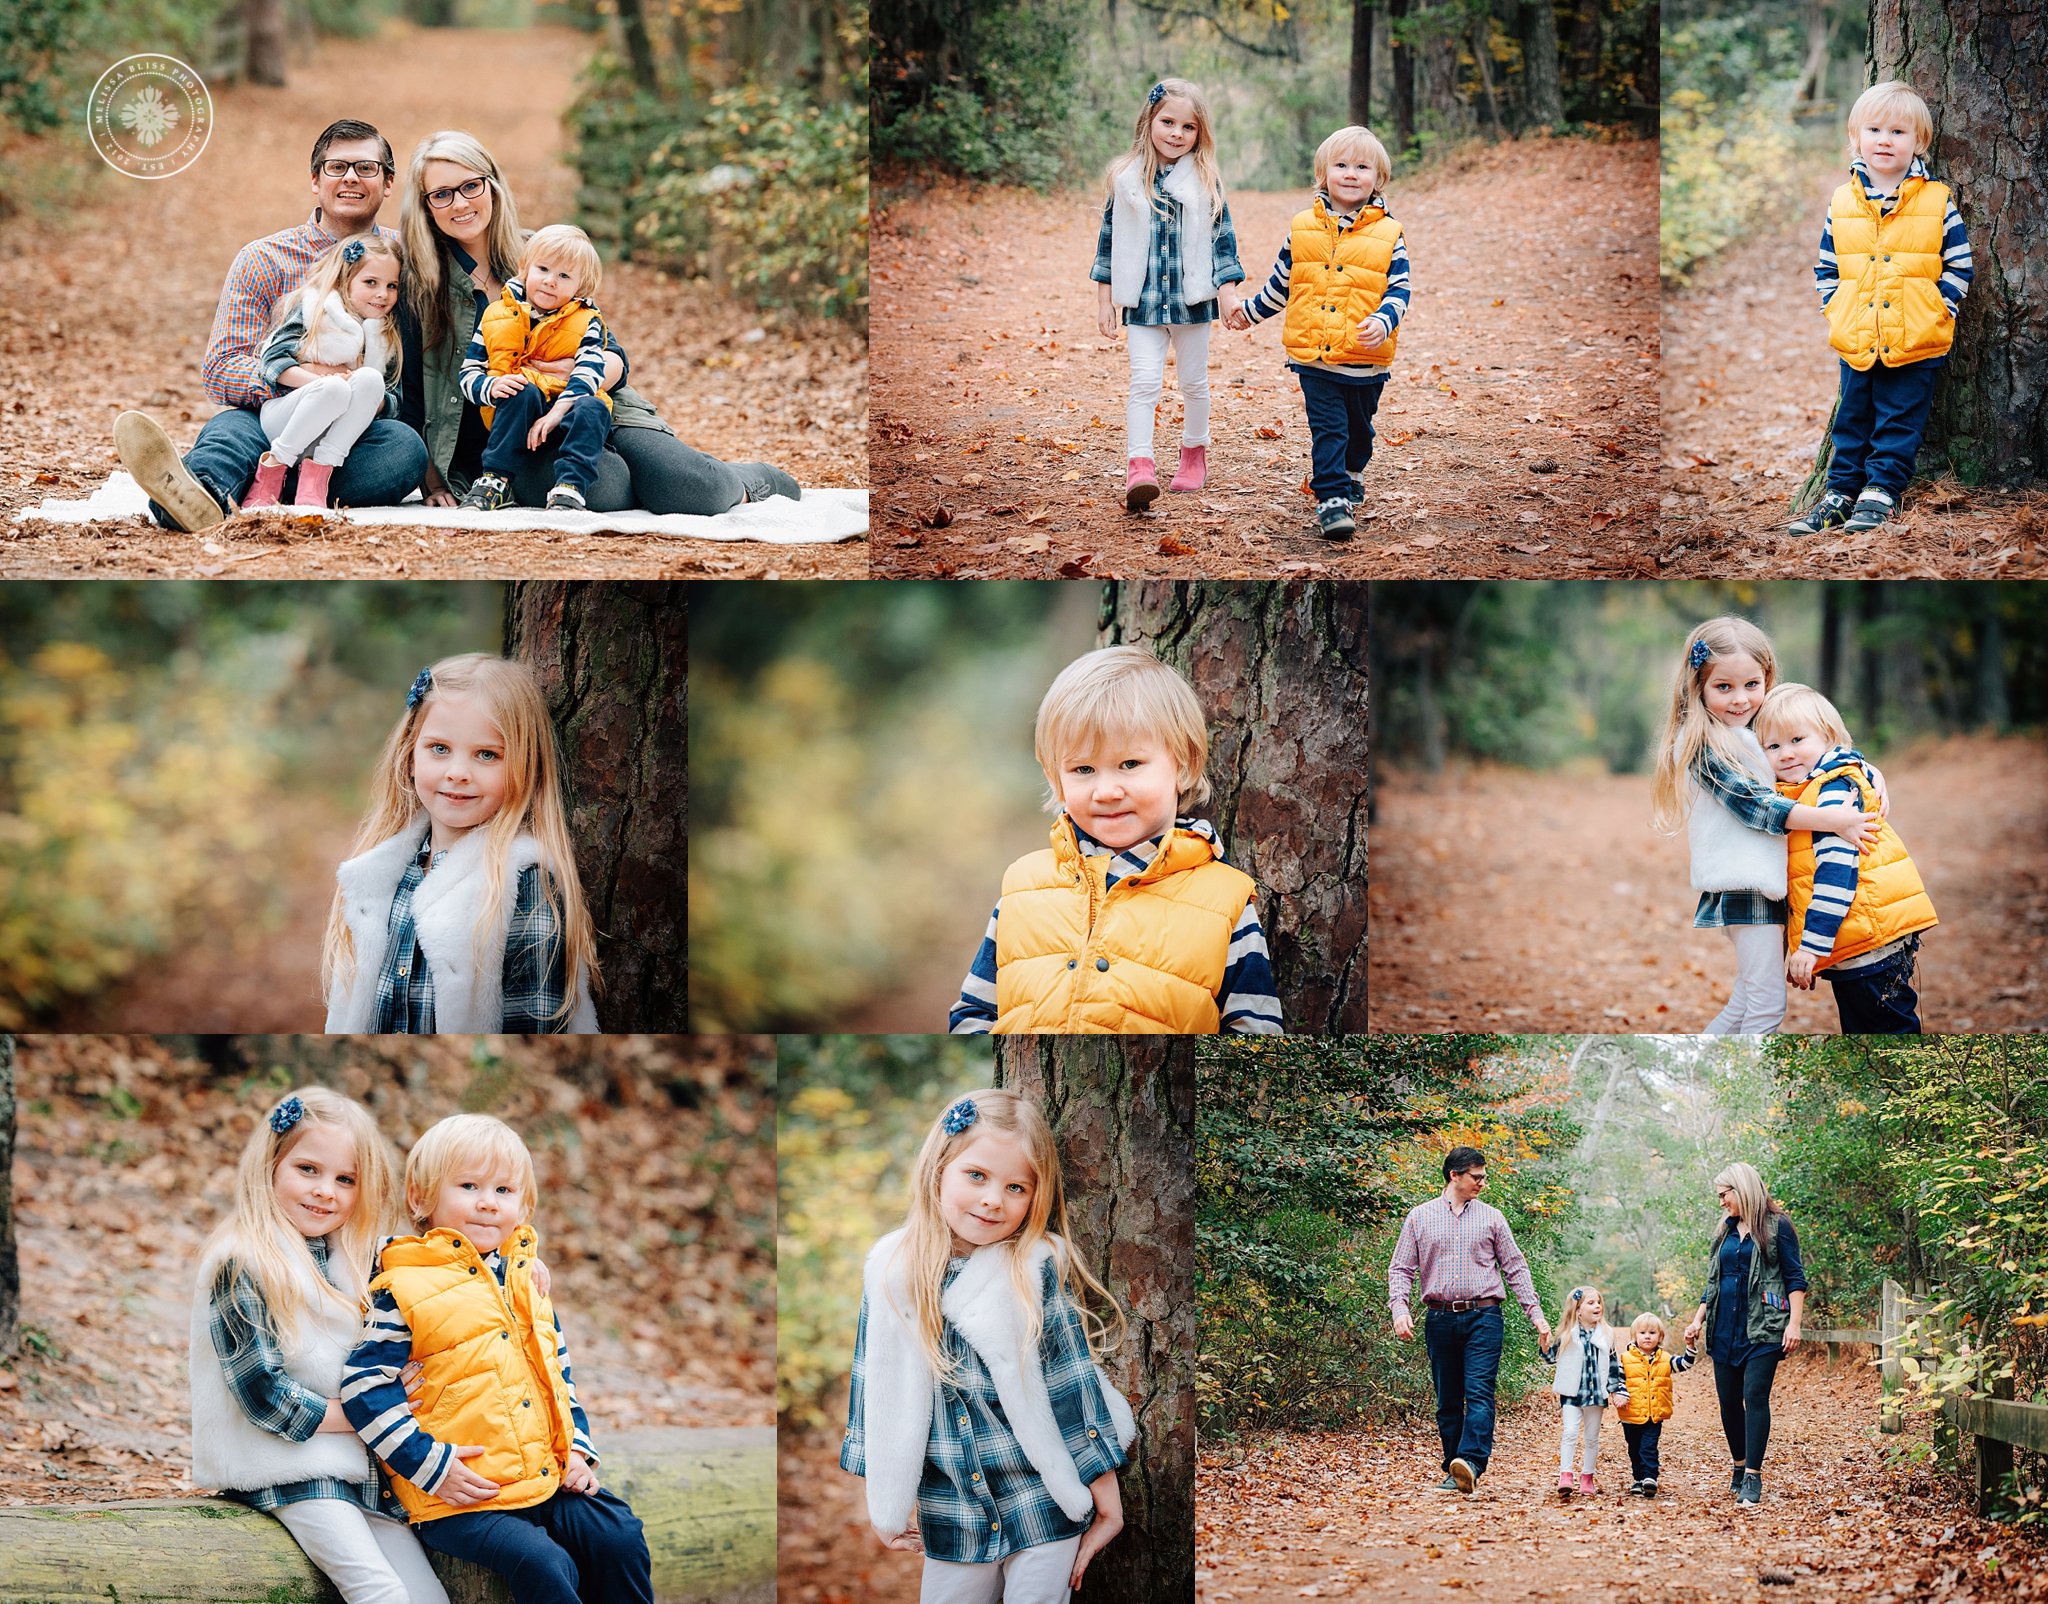 virginia-beach-professional-family-photographers-candid-lifestyle-photography-fall-sessions-norfolk-chesapeake-portsmouth-melissa-bliss-photography